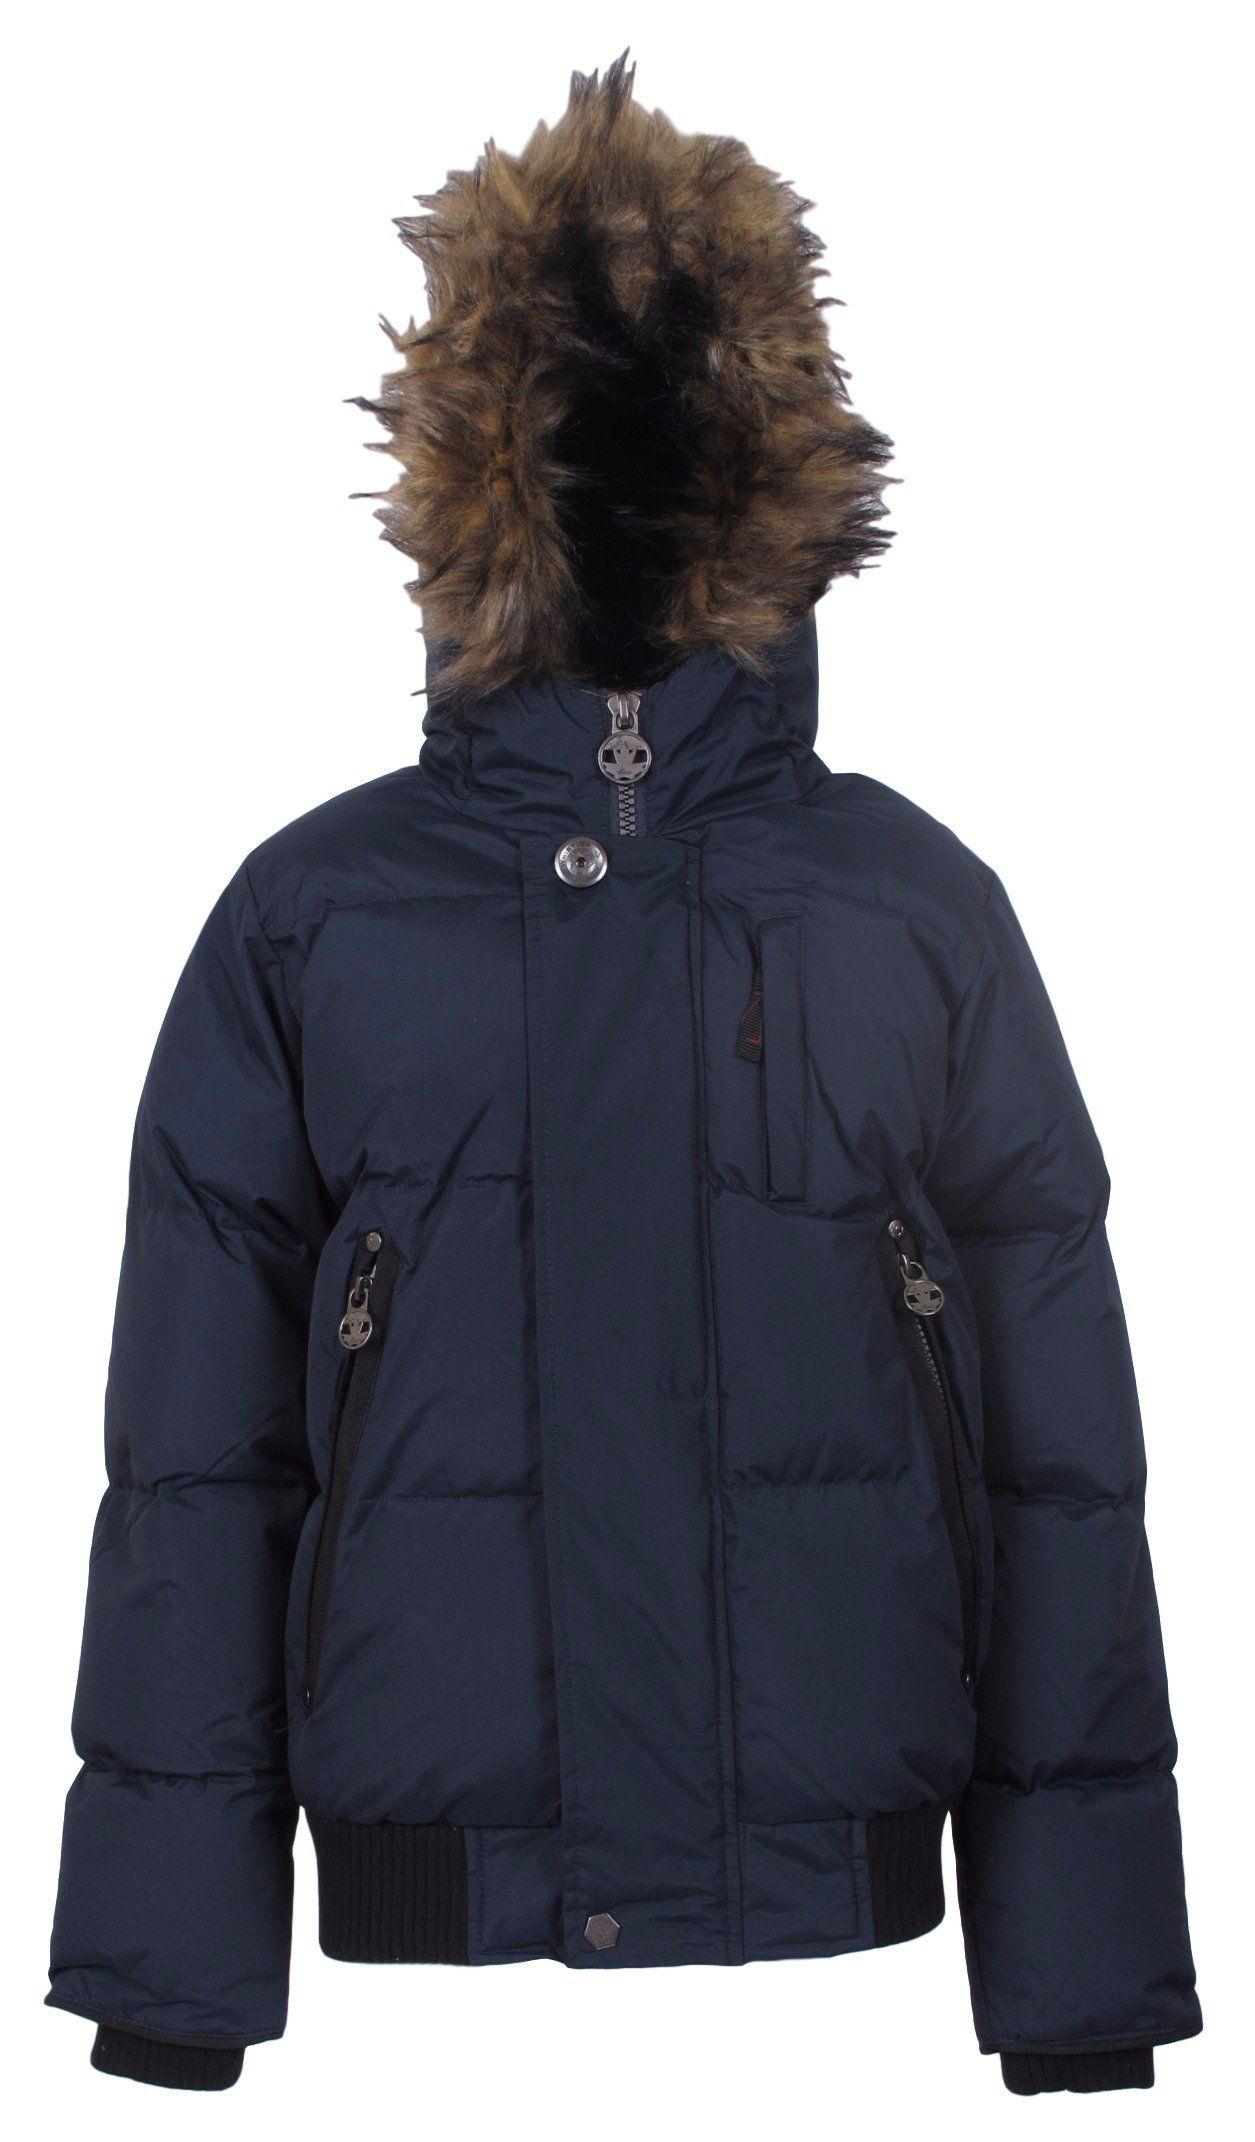 J Whistler Boy S Summit Insulated Puffer Snorkel Bomber Jacket Coat Navy 8 Water Resistant Outer Is 100 Ribbed Polyester Bomber Jacket Jackets Coats Jackets [ 2142 x 1255 Pixel ]